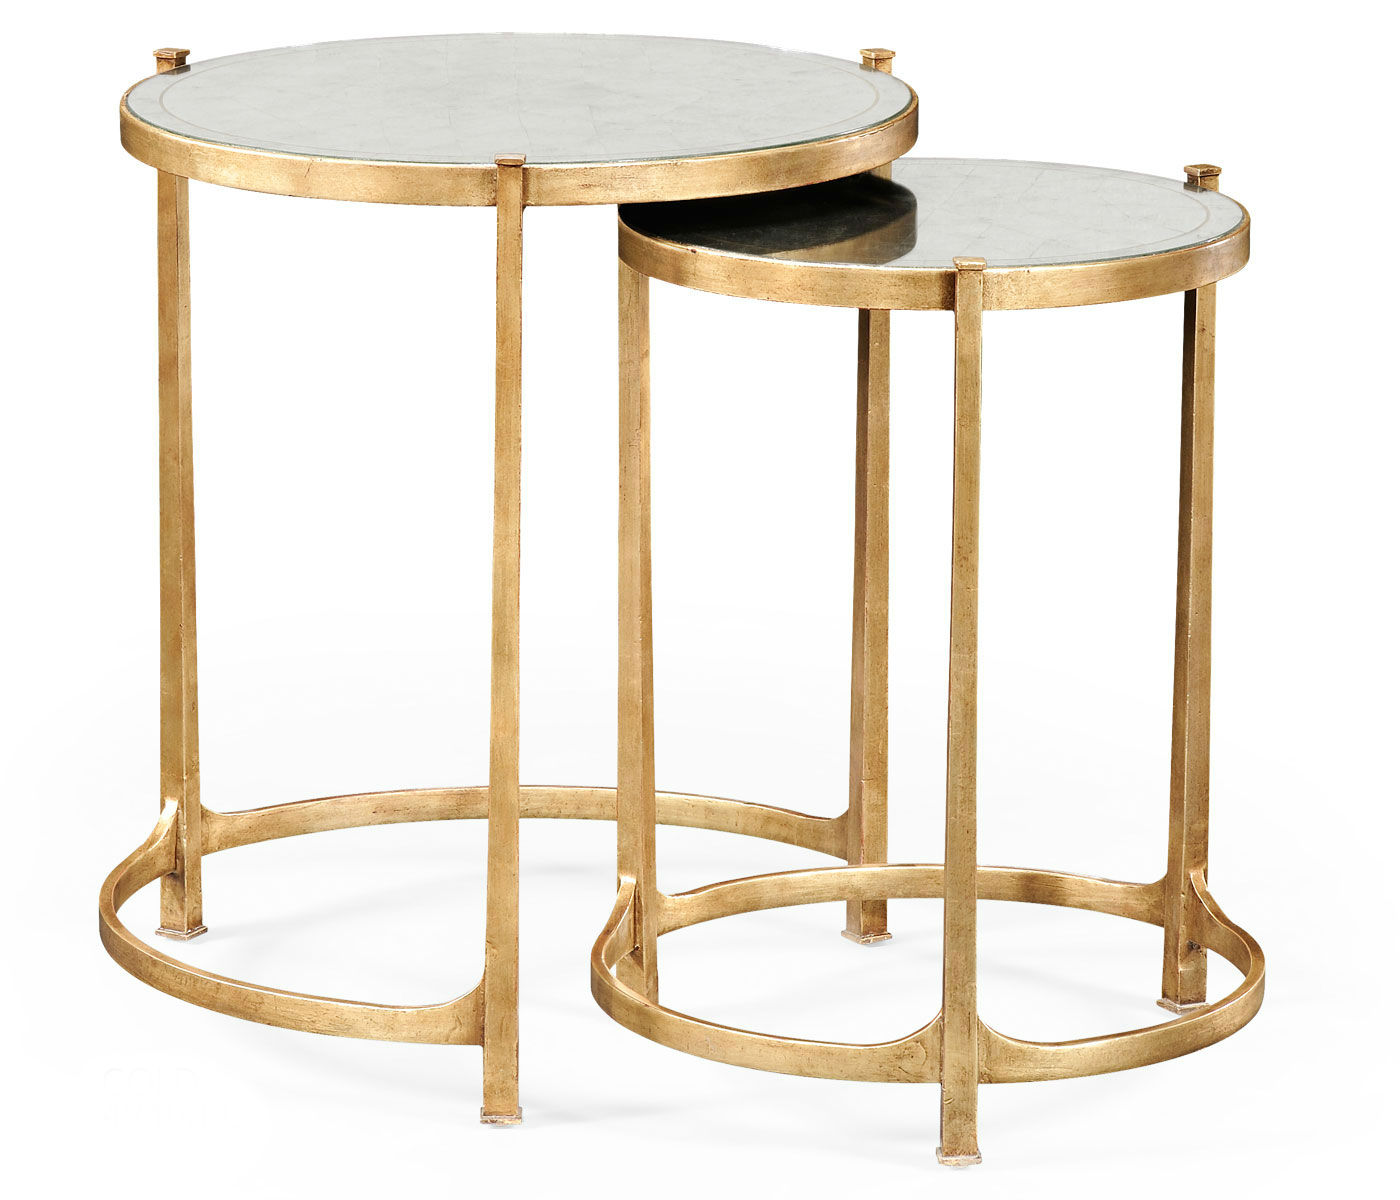 nesting tables gold tablesgold side table marble accent knurl trestle dining gallerie coupon ikea plastic storage boxes acrylic top coffee small console with industrial chic door